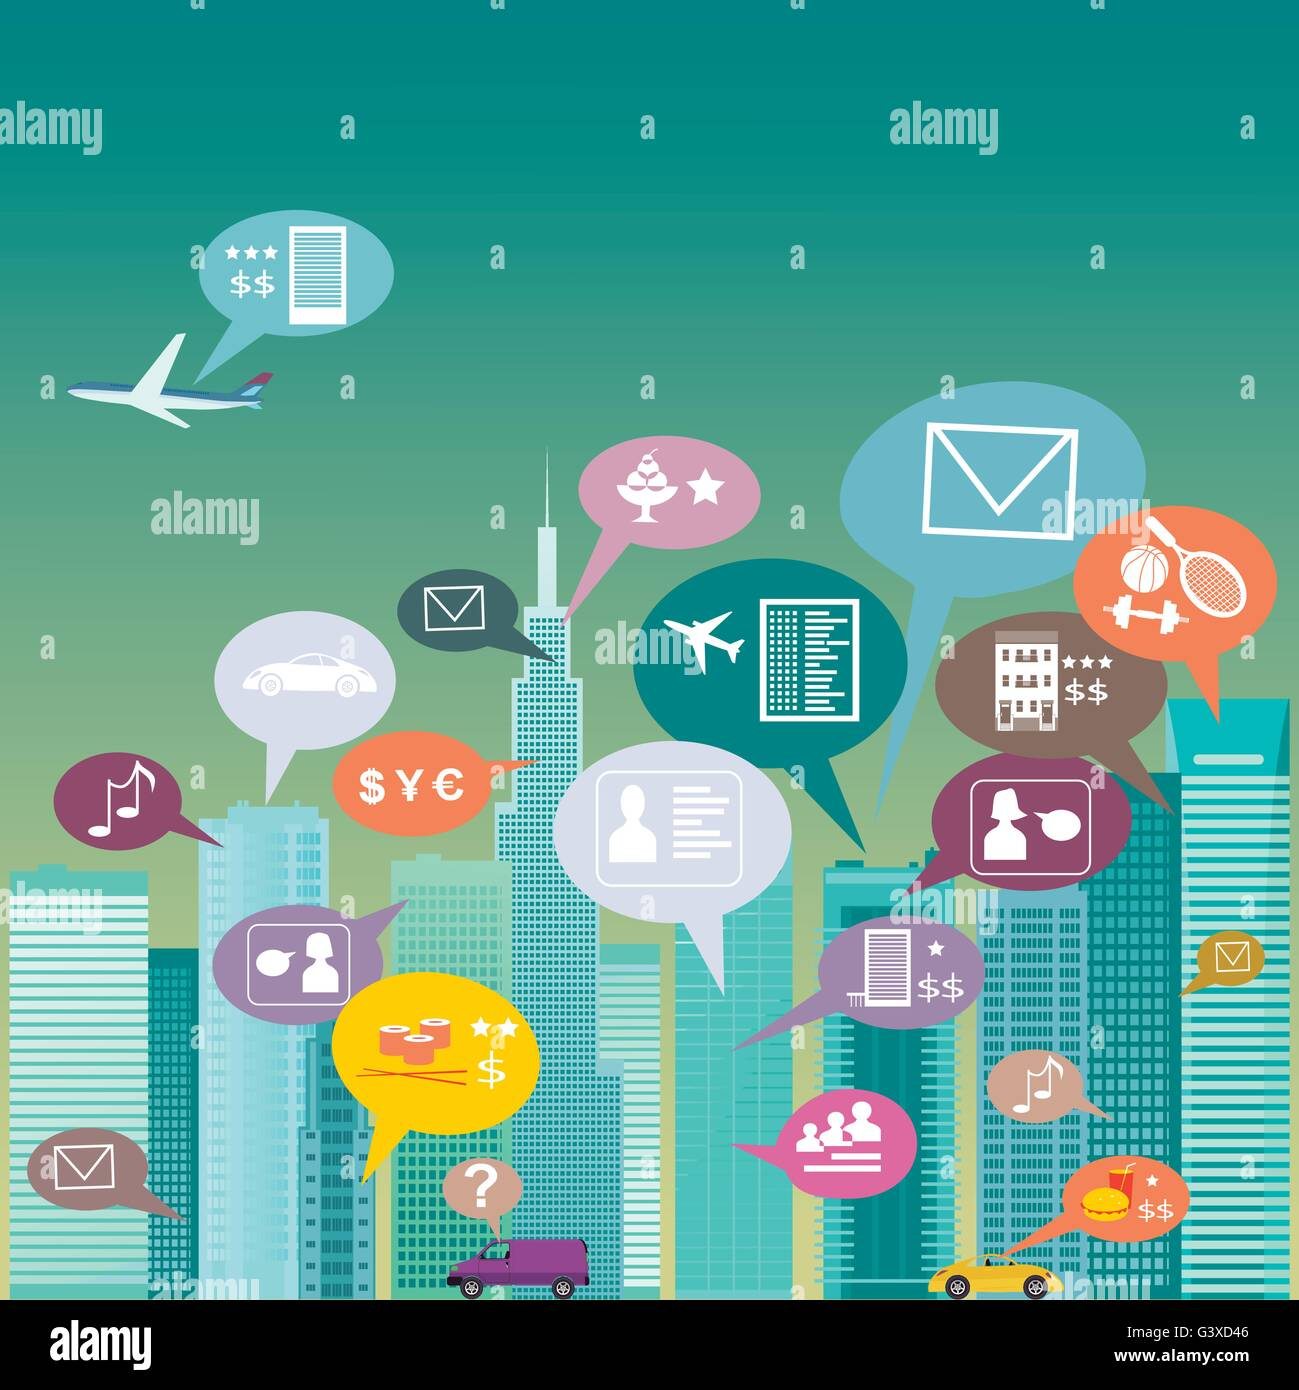 City social network. Urban landscape filled with social network icons, vector illustration - Stock Vector